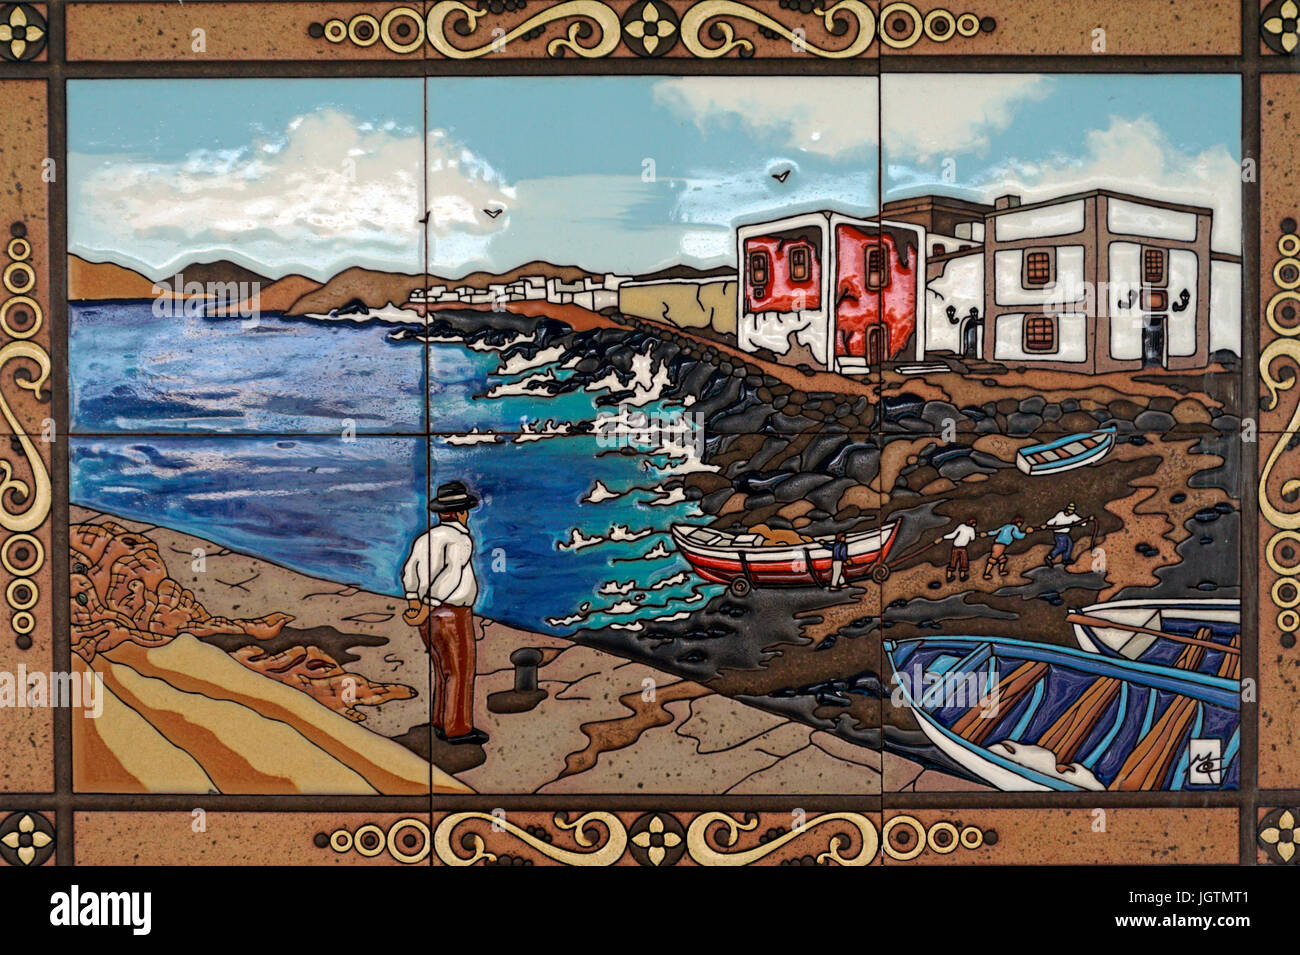 Tile picture shows a coast landscape with fishing boats, Puerto del Carmen, Lanzarote island, Canary islands, Spain, - Stock Image